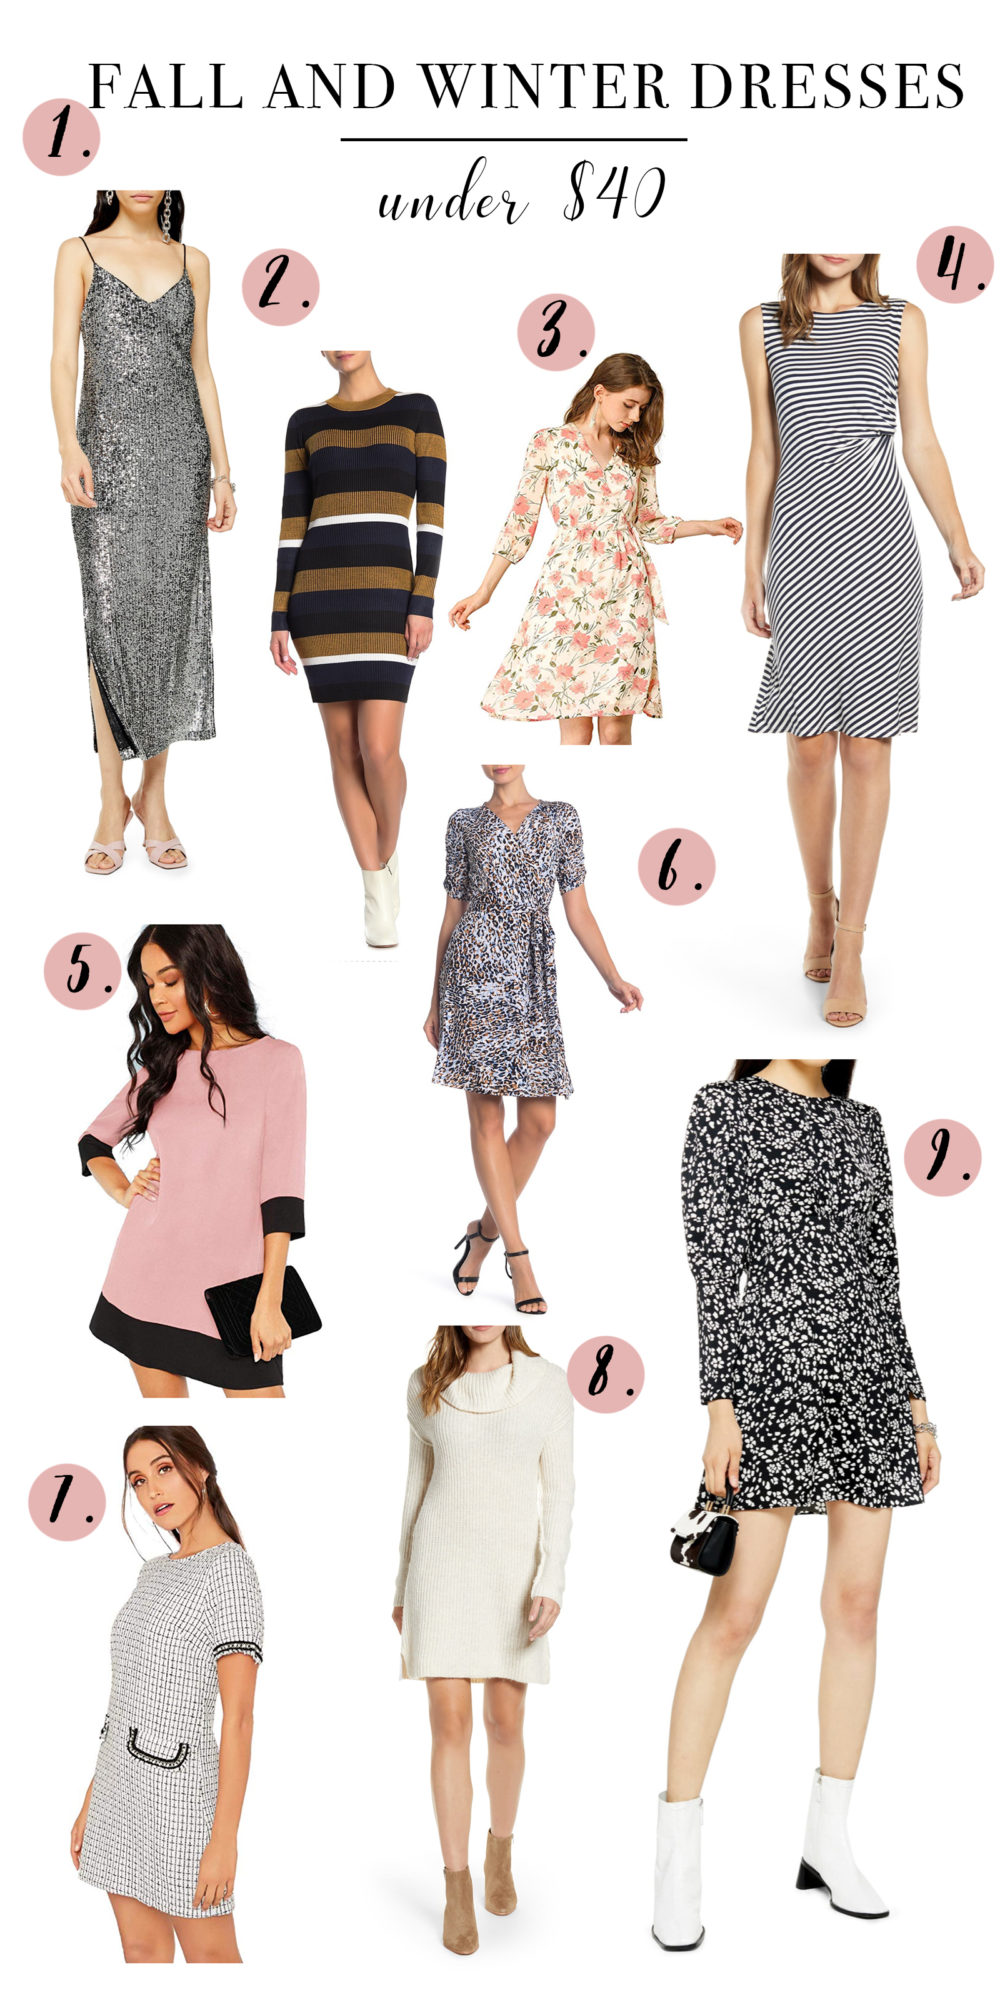 Fall and Winter Dresses Under $40